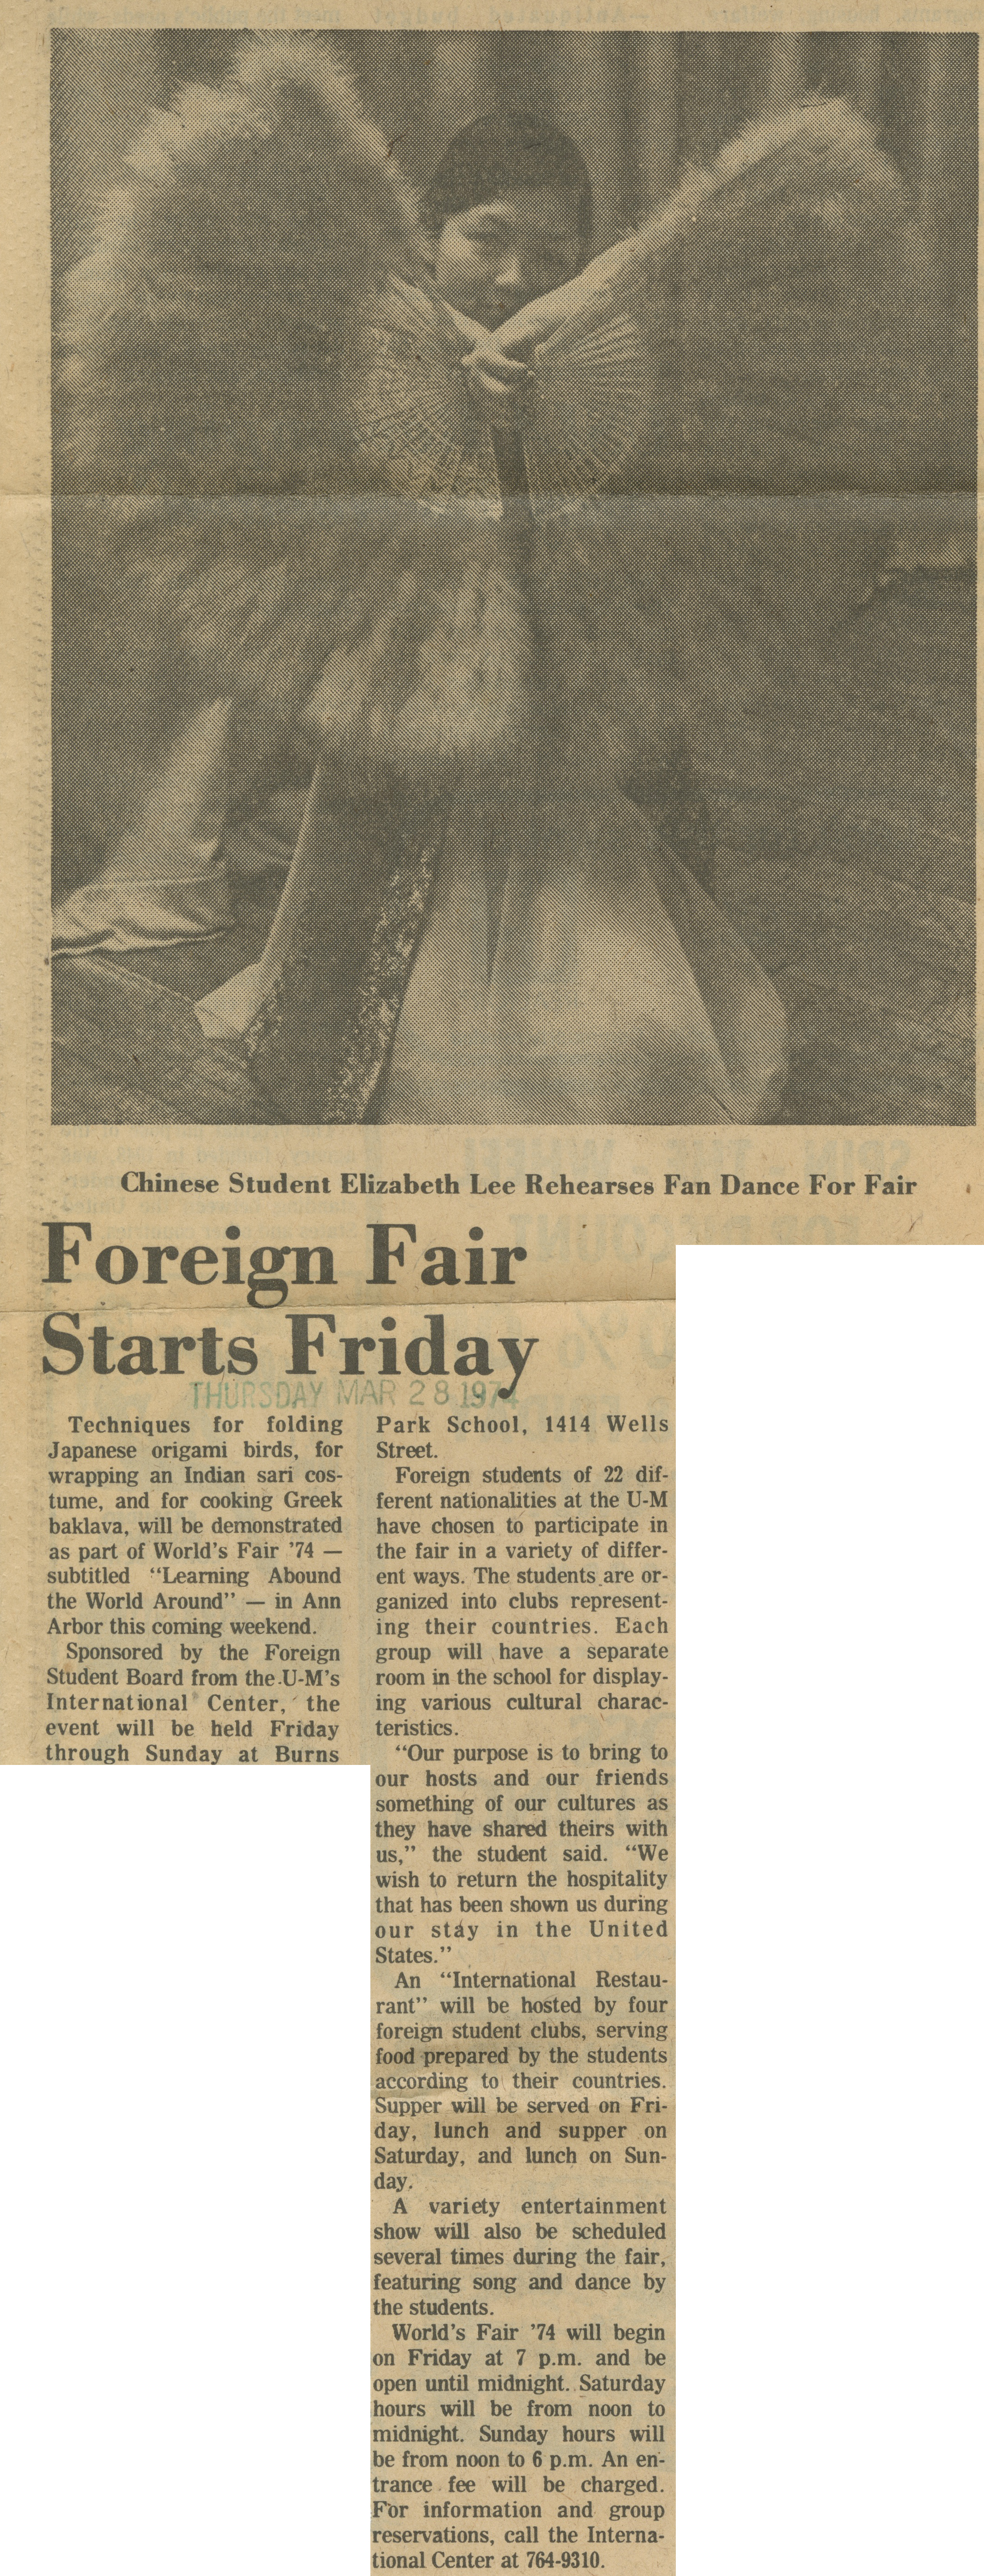 Foreign Fair Starts Friday image